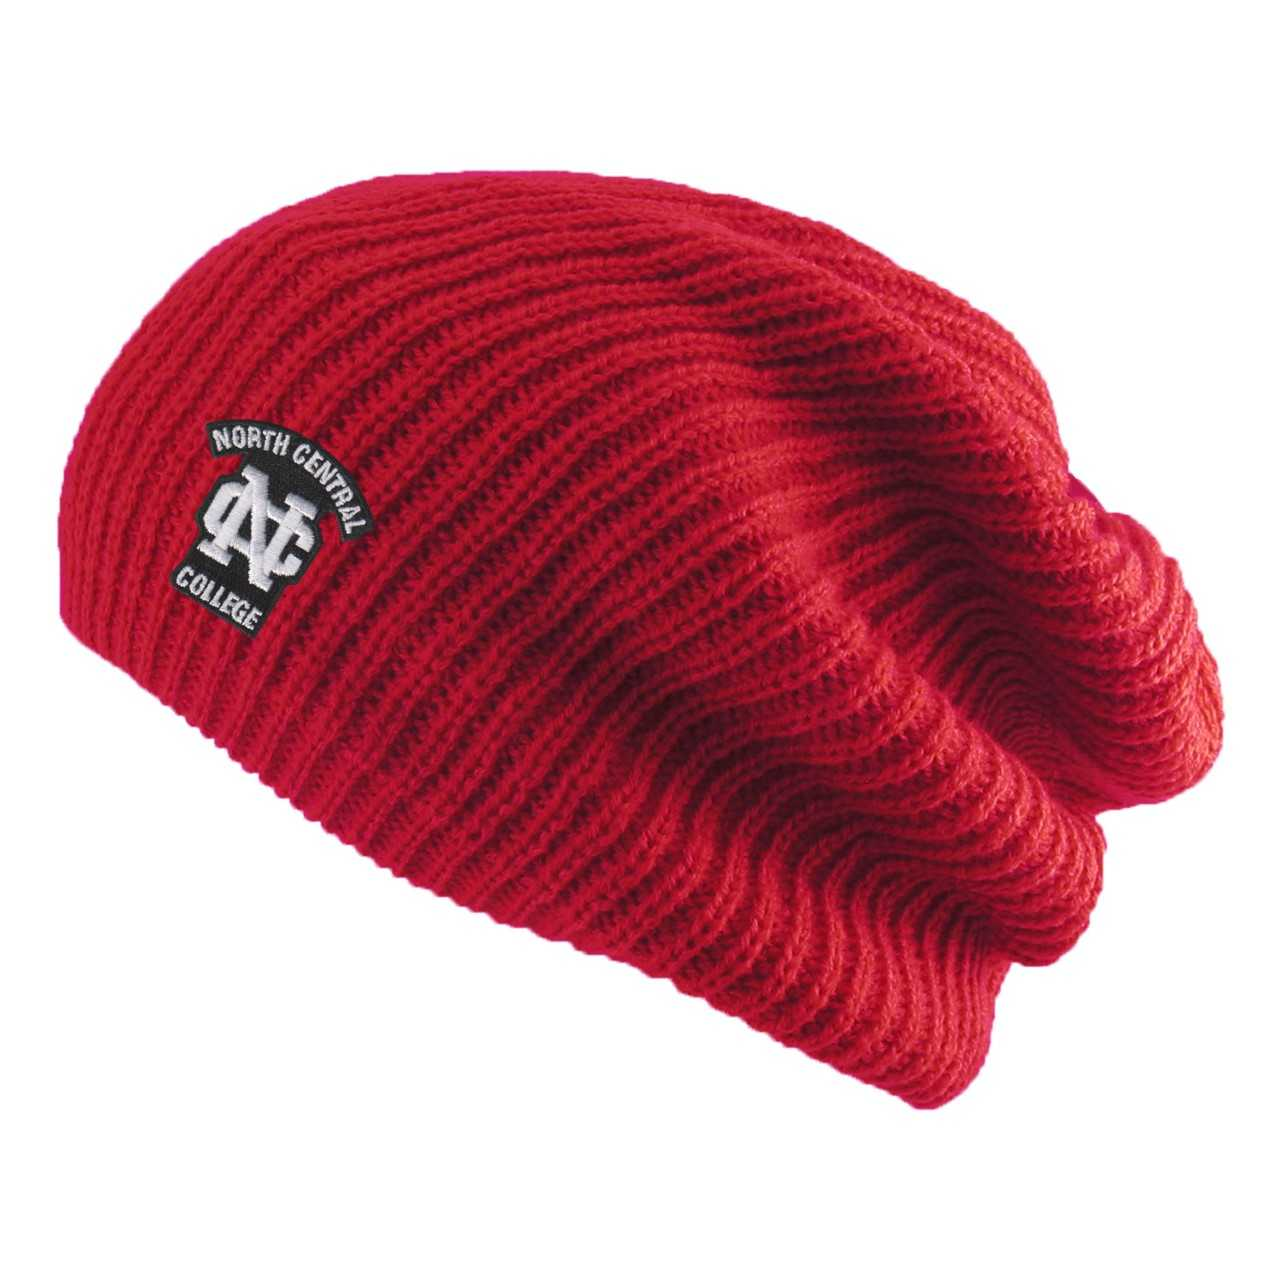 Image for the North Central College Red Hipster Logofit Knit Slouchy Hat product